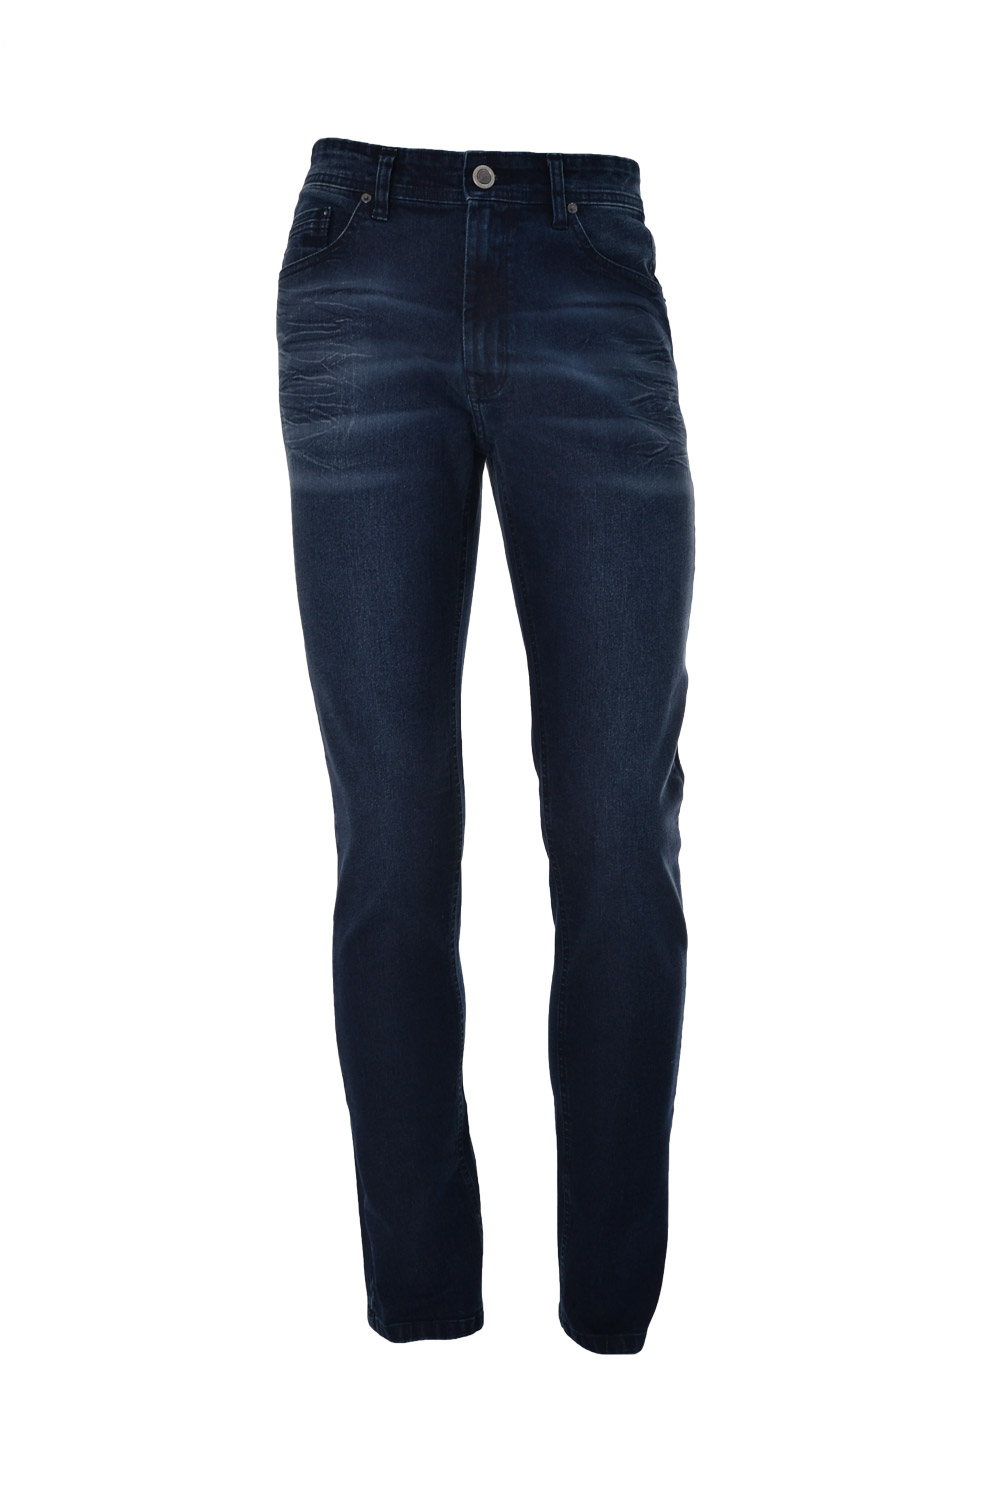 CALÇA JEANS BLUES POLIALGODAO & ELASTANO 5 POCKETS STONED USED